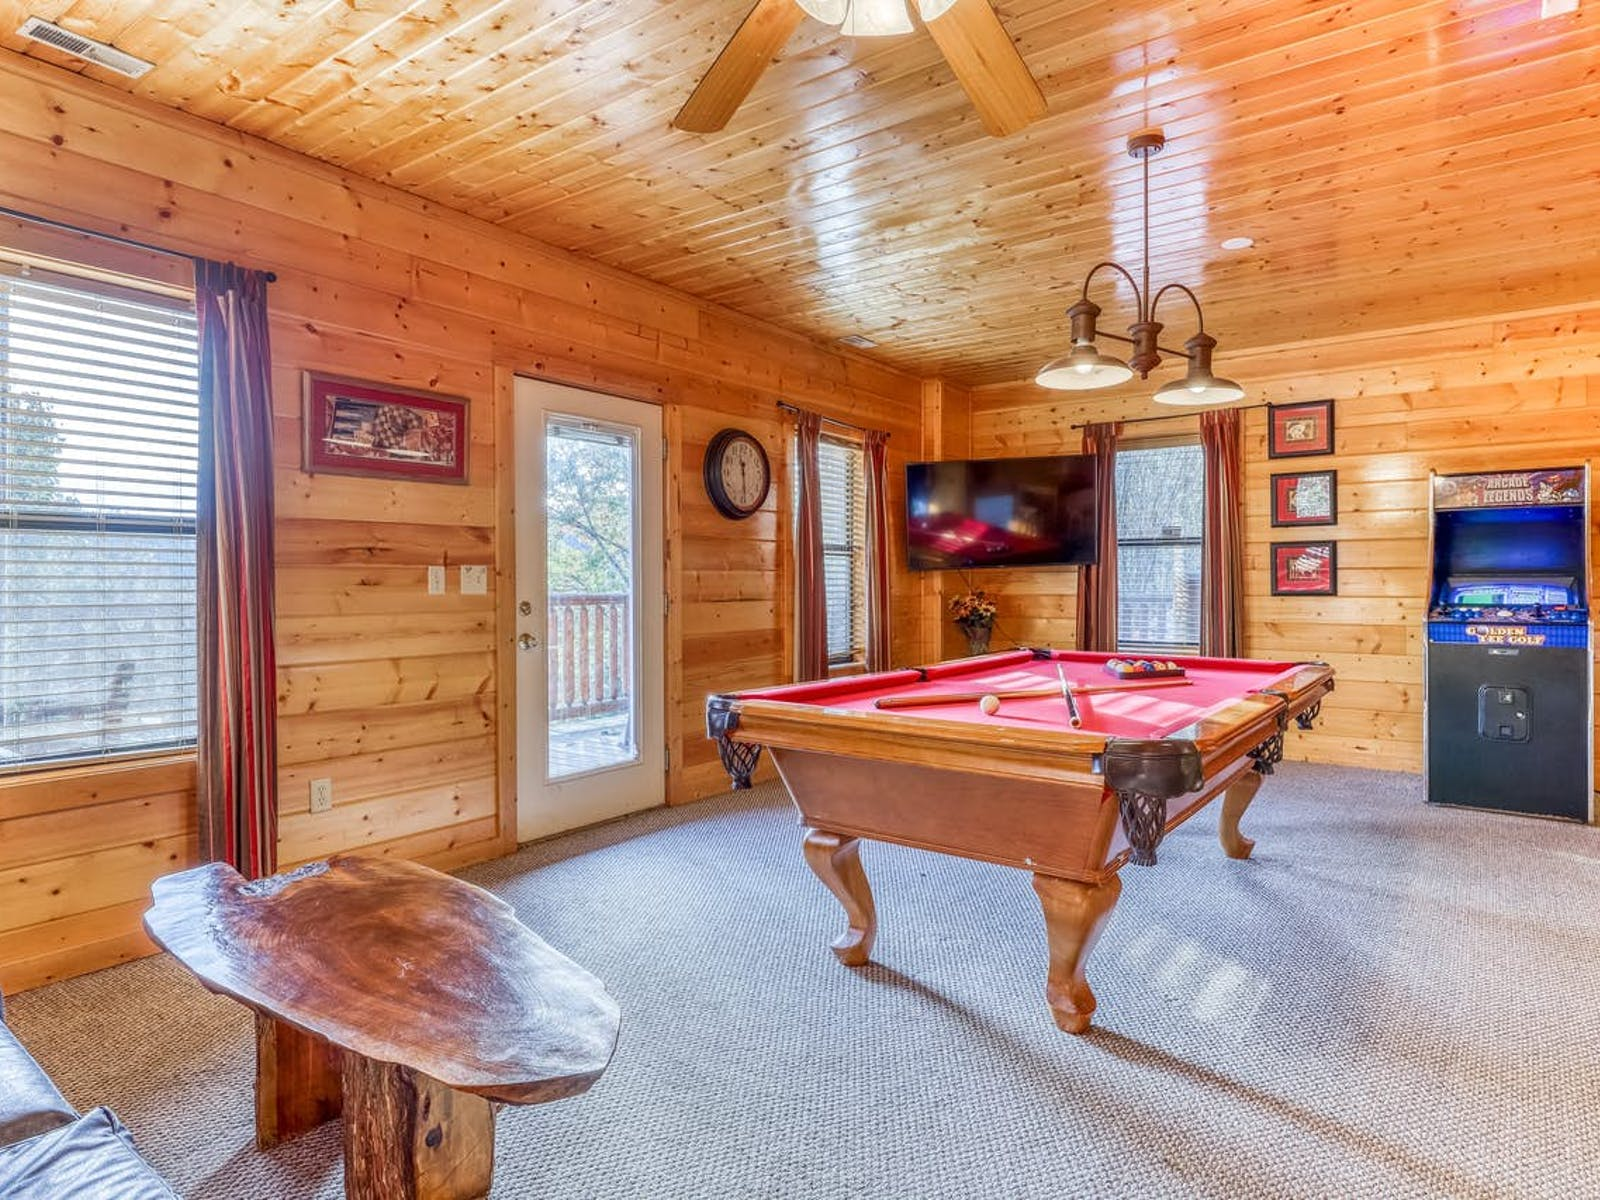 game room with pool table, arcade, tv and more of townsend, tn vacation cabin